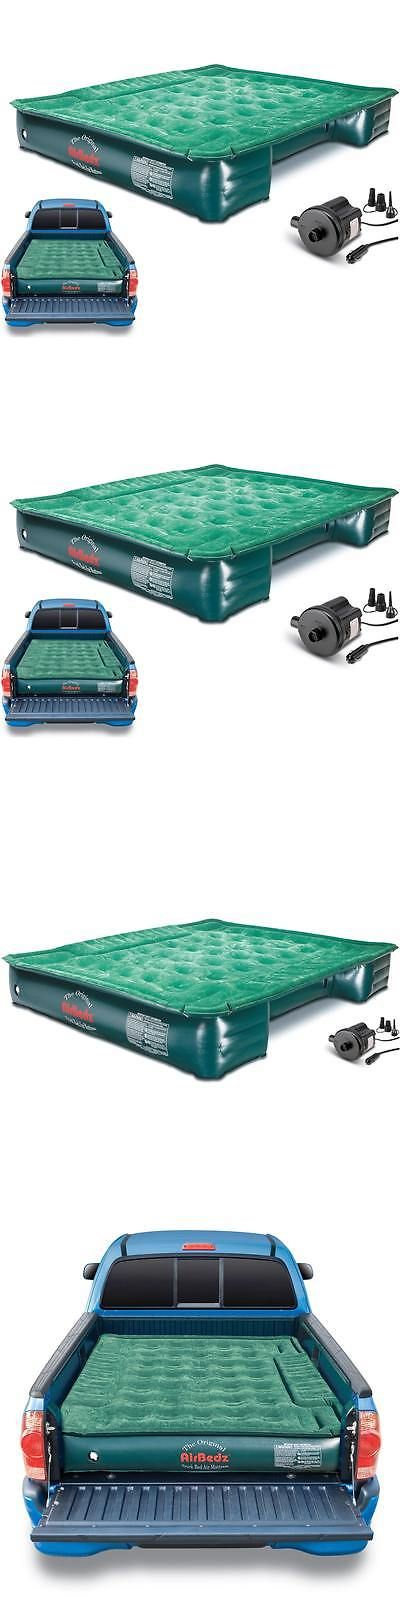 Inflatable Mattresses Airbeds 131598: Airbedz Lite Ppi Pv203c Mid-Size 6 - 6 6 Truck Bed Air Mattress With 12 Volt -> BUY IT NOW ONLY: $118.5 on eBay!